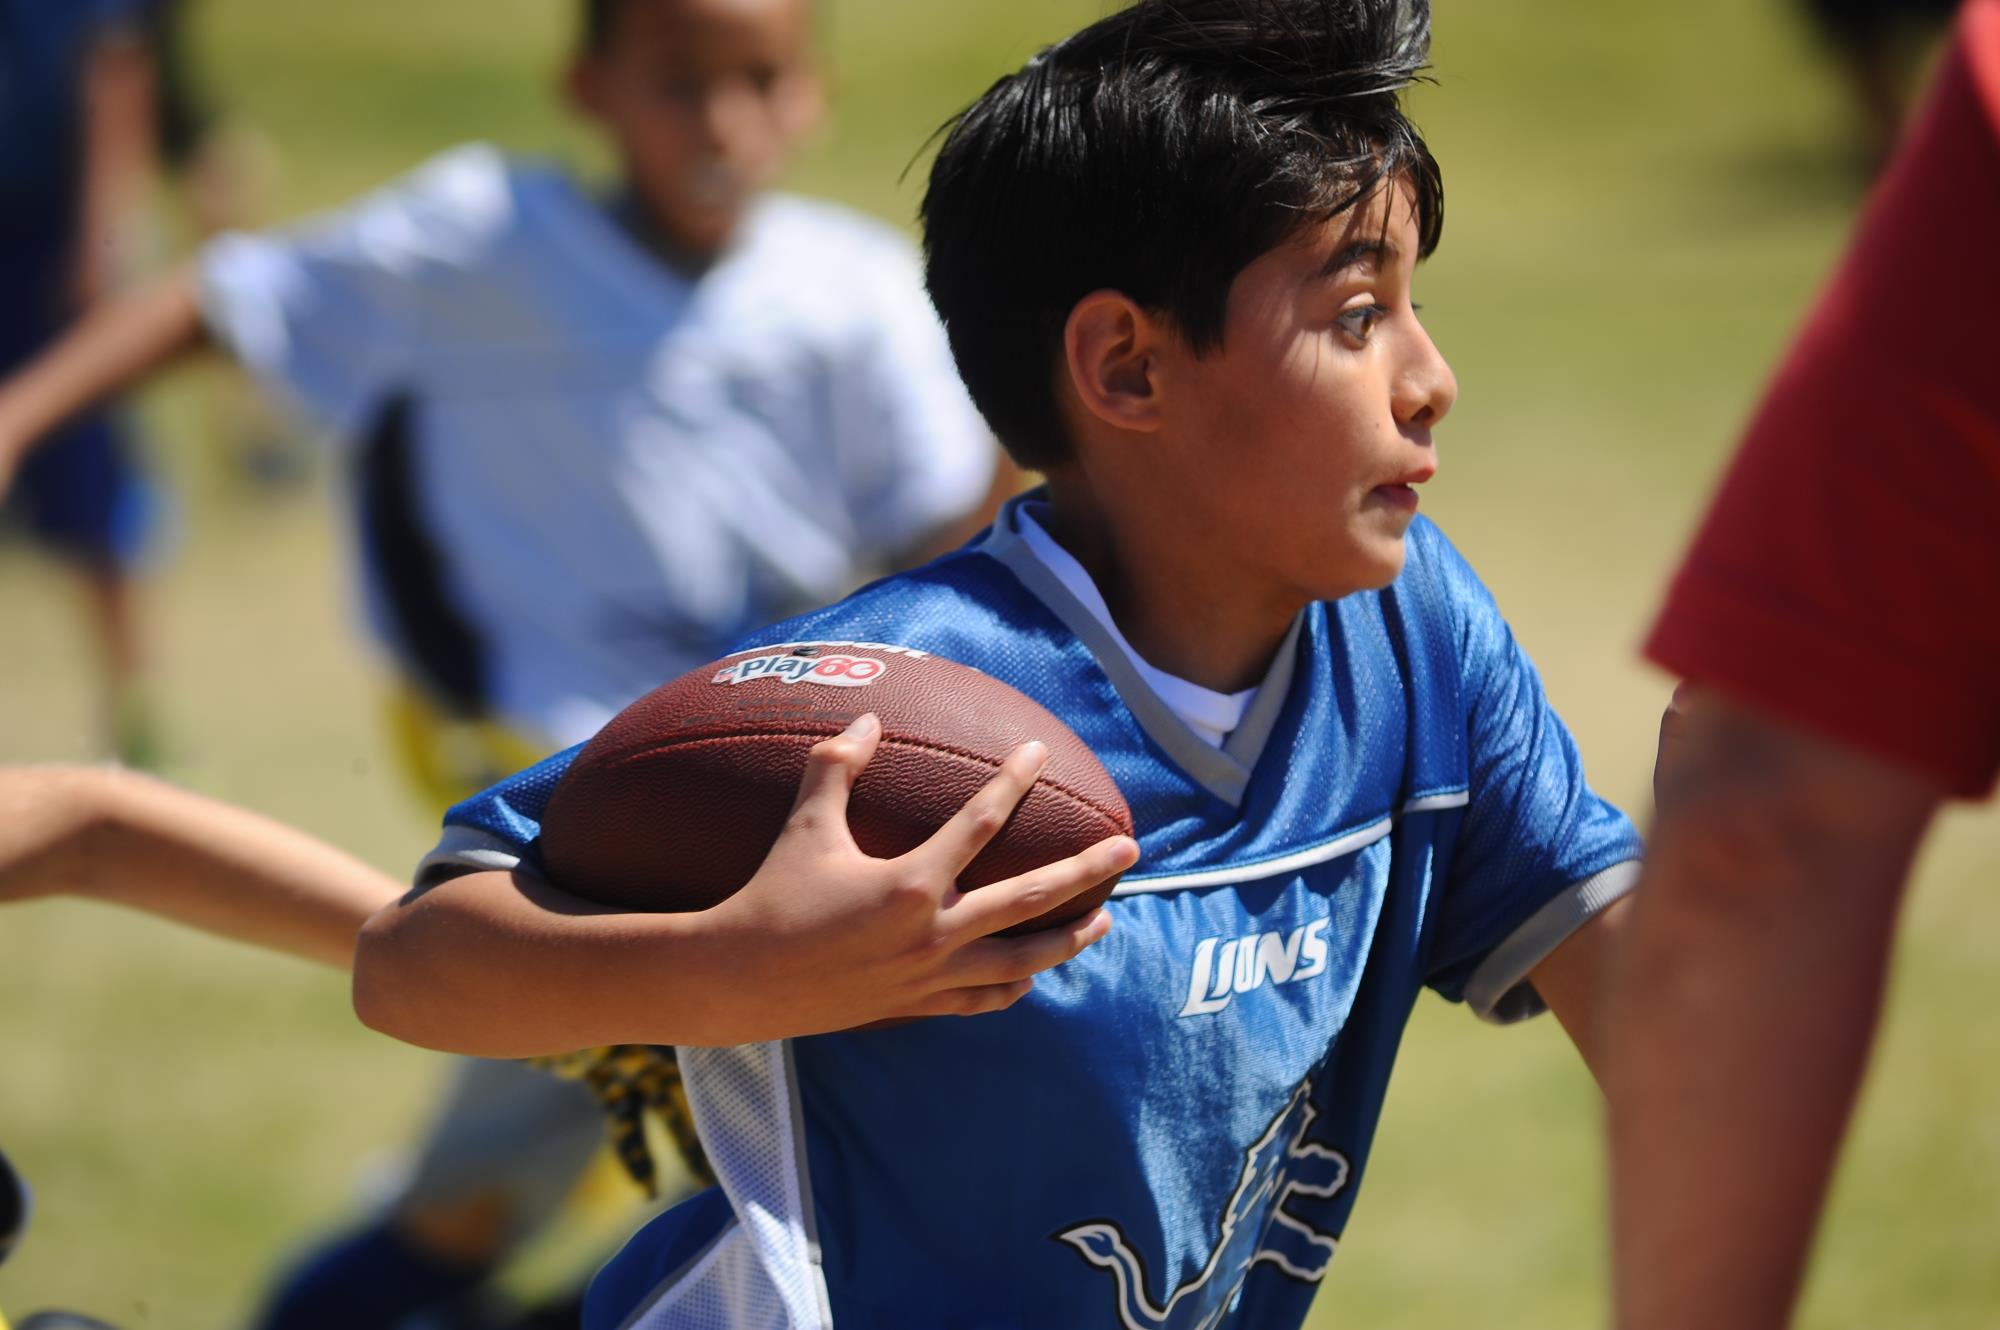 Flag Football kid running with ball